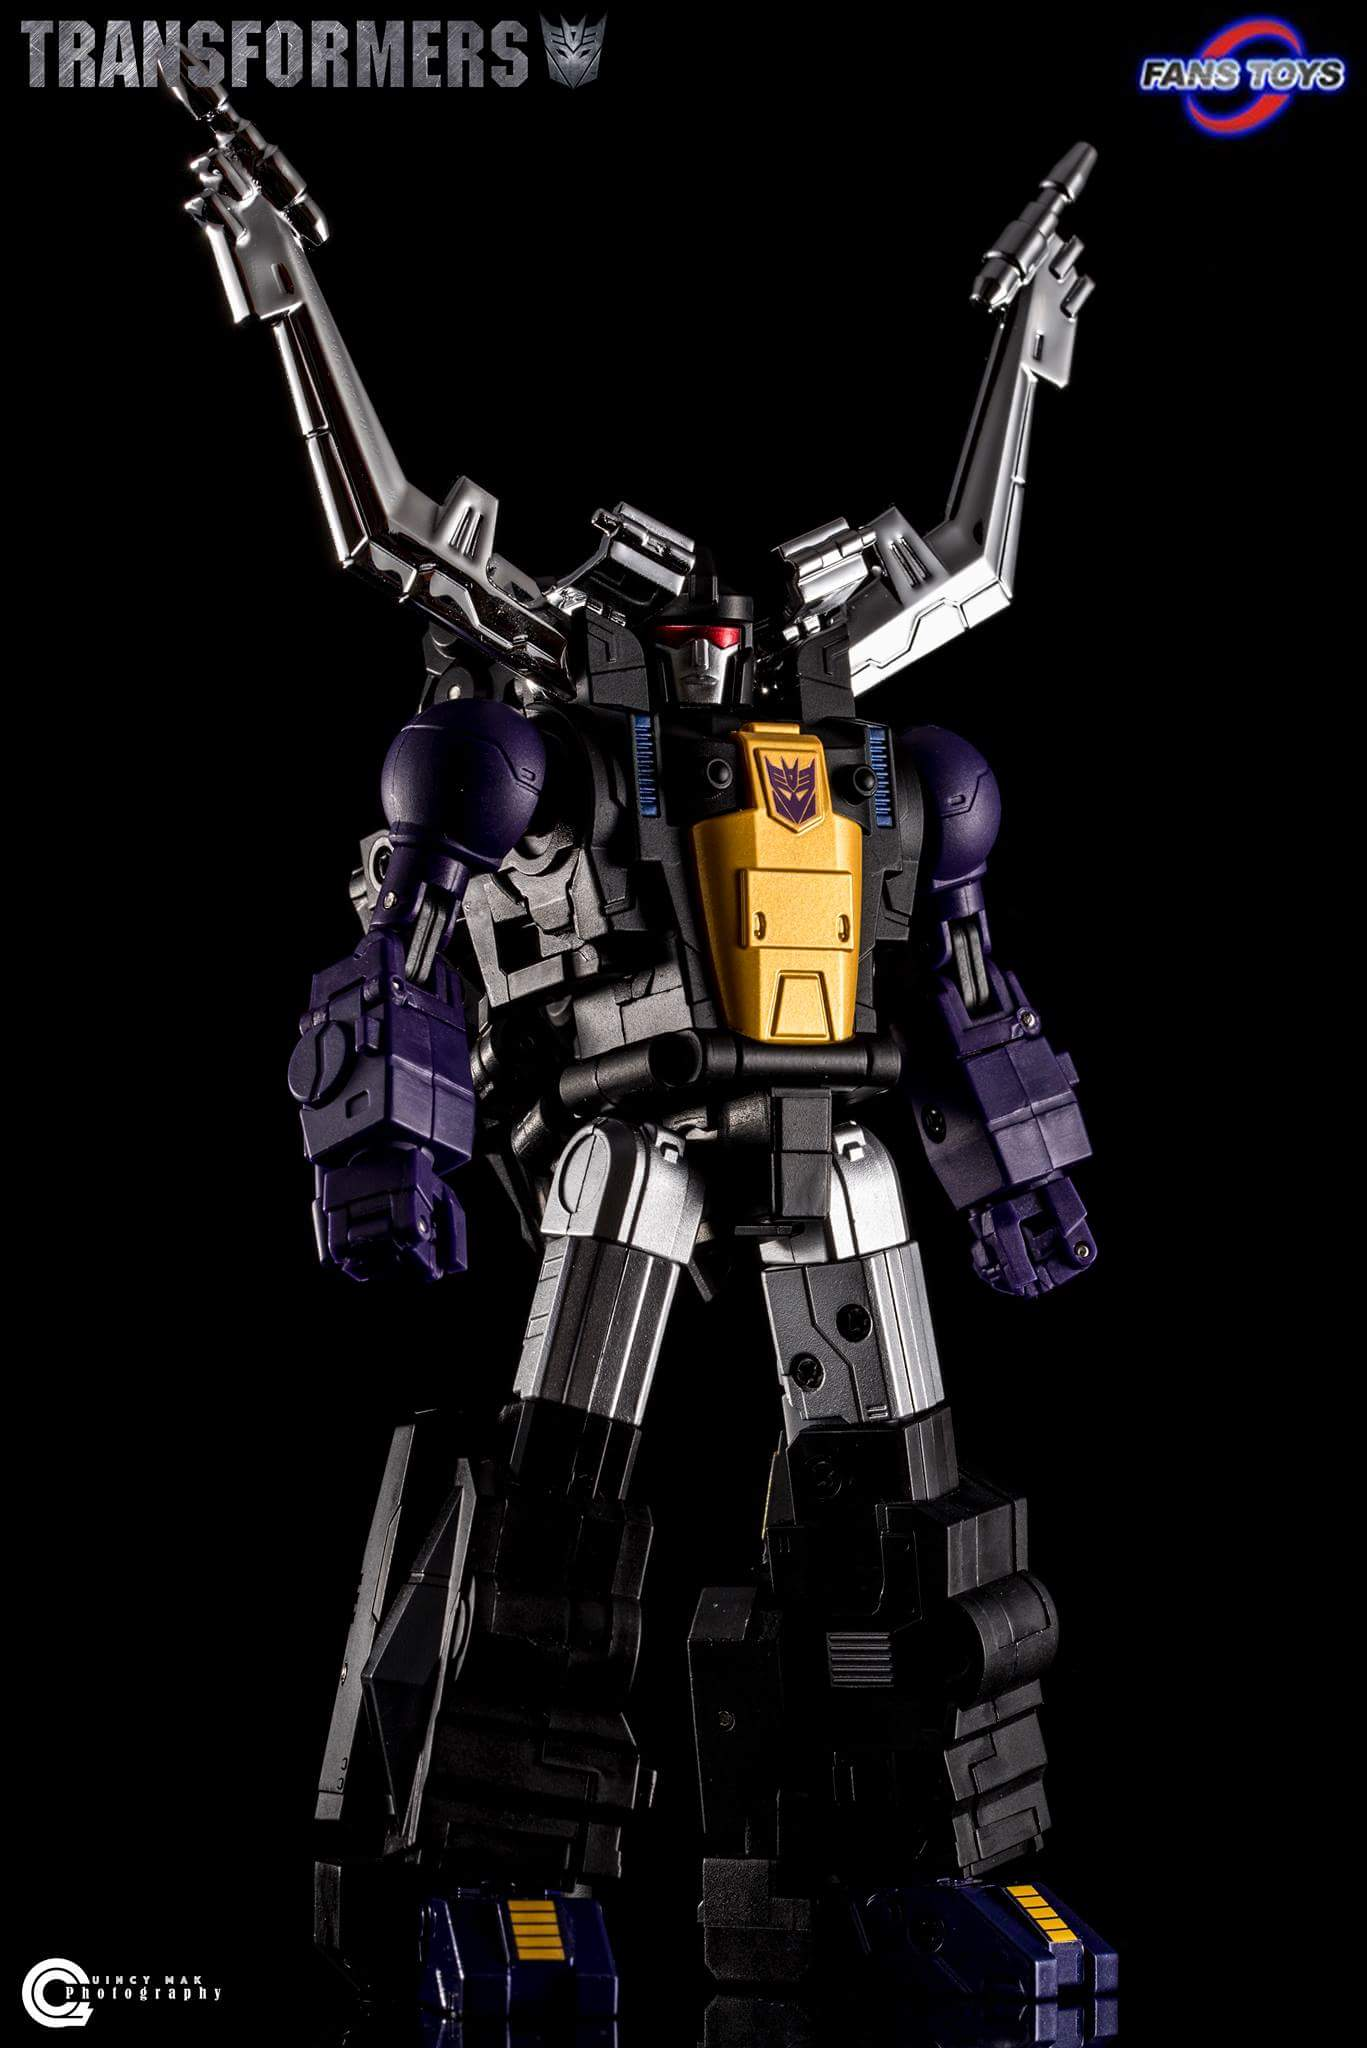 [Fanstoys] Produit Tiers - Jouet FT-12 Grenadier / FT-13 Mercenary / FT-14 Forager - aka Insecticons - Page 3 VRFHAO6W